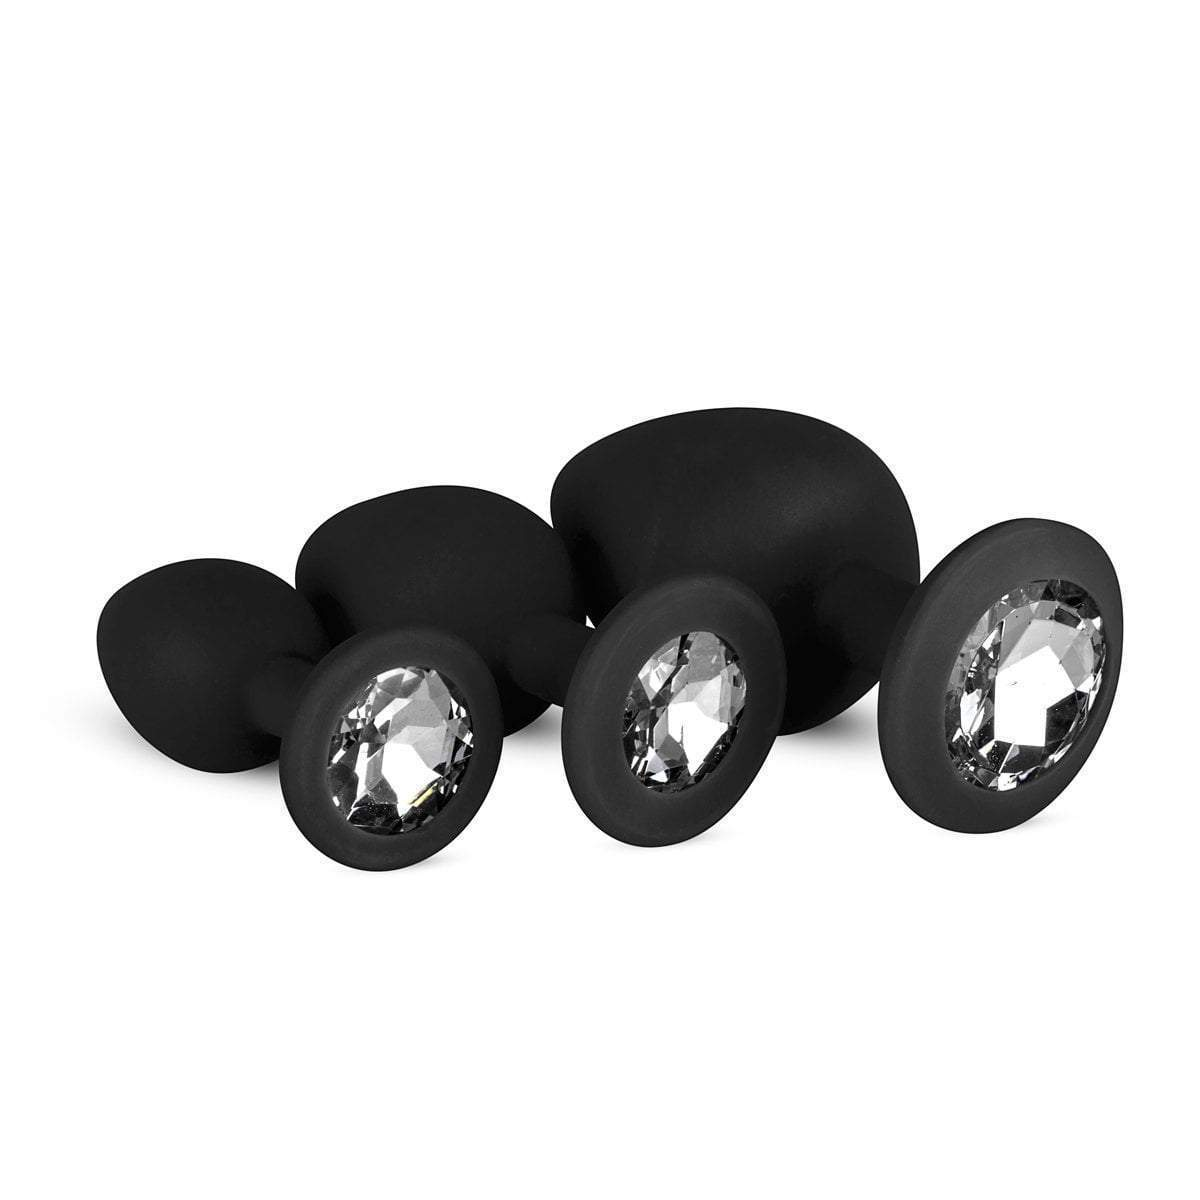 Easytoys Anal Collection Butt Plug Set of 3 Silicone Buttplugs with Diamond - Black